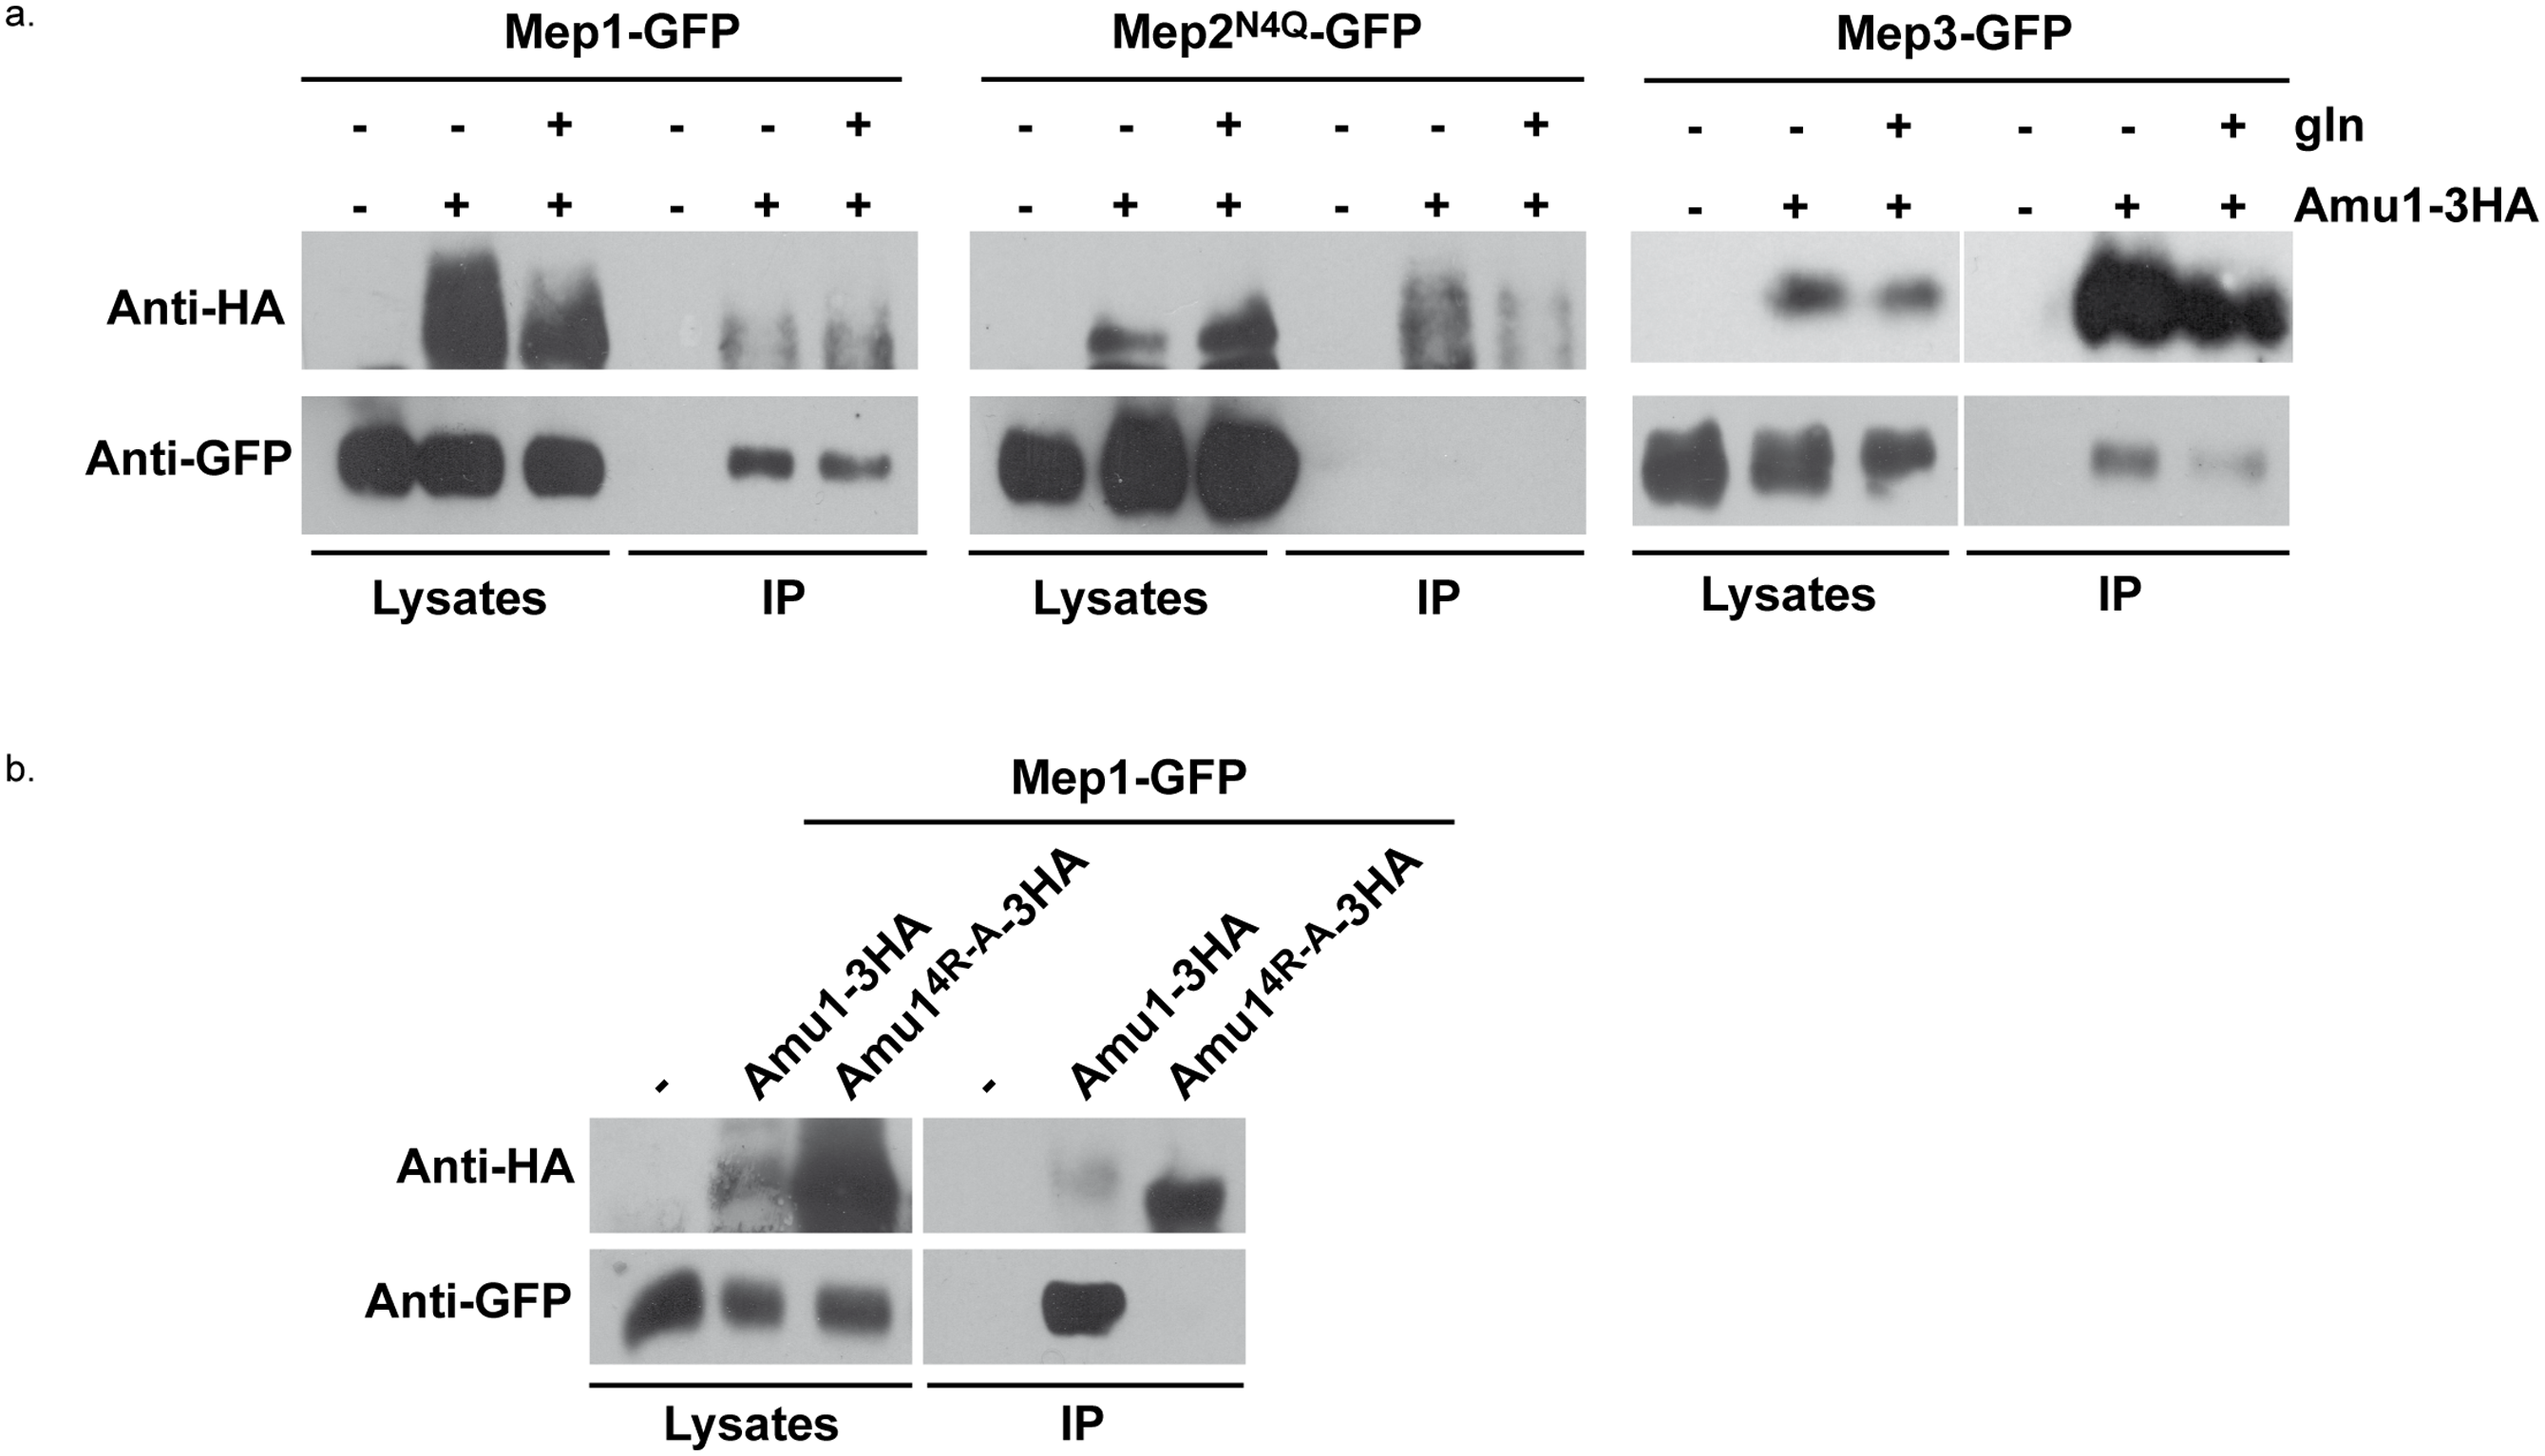 Amu1 interacts with Mep1 and Mep3 <i>in vitro</i>.